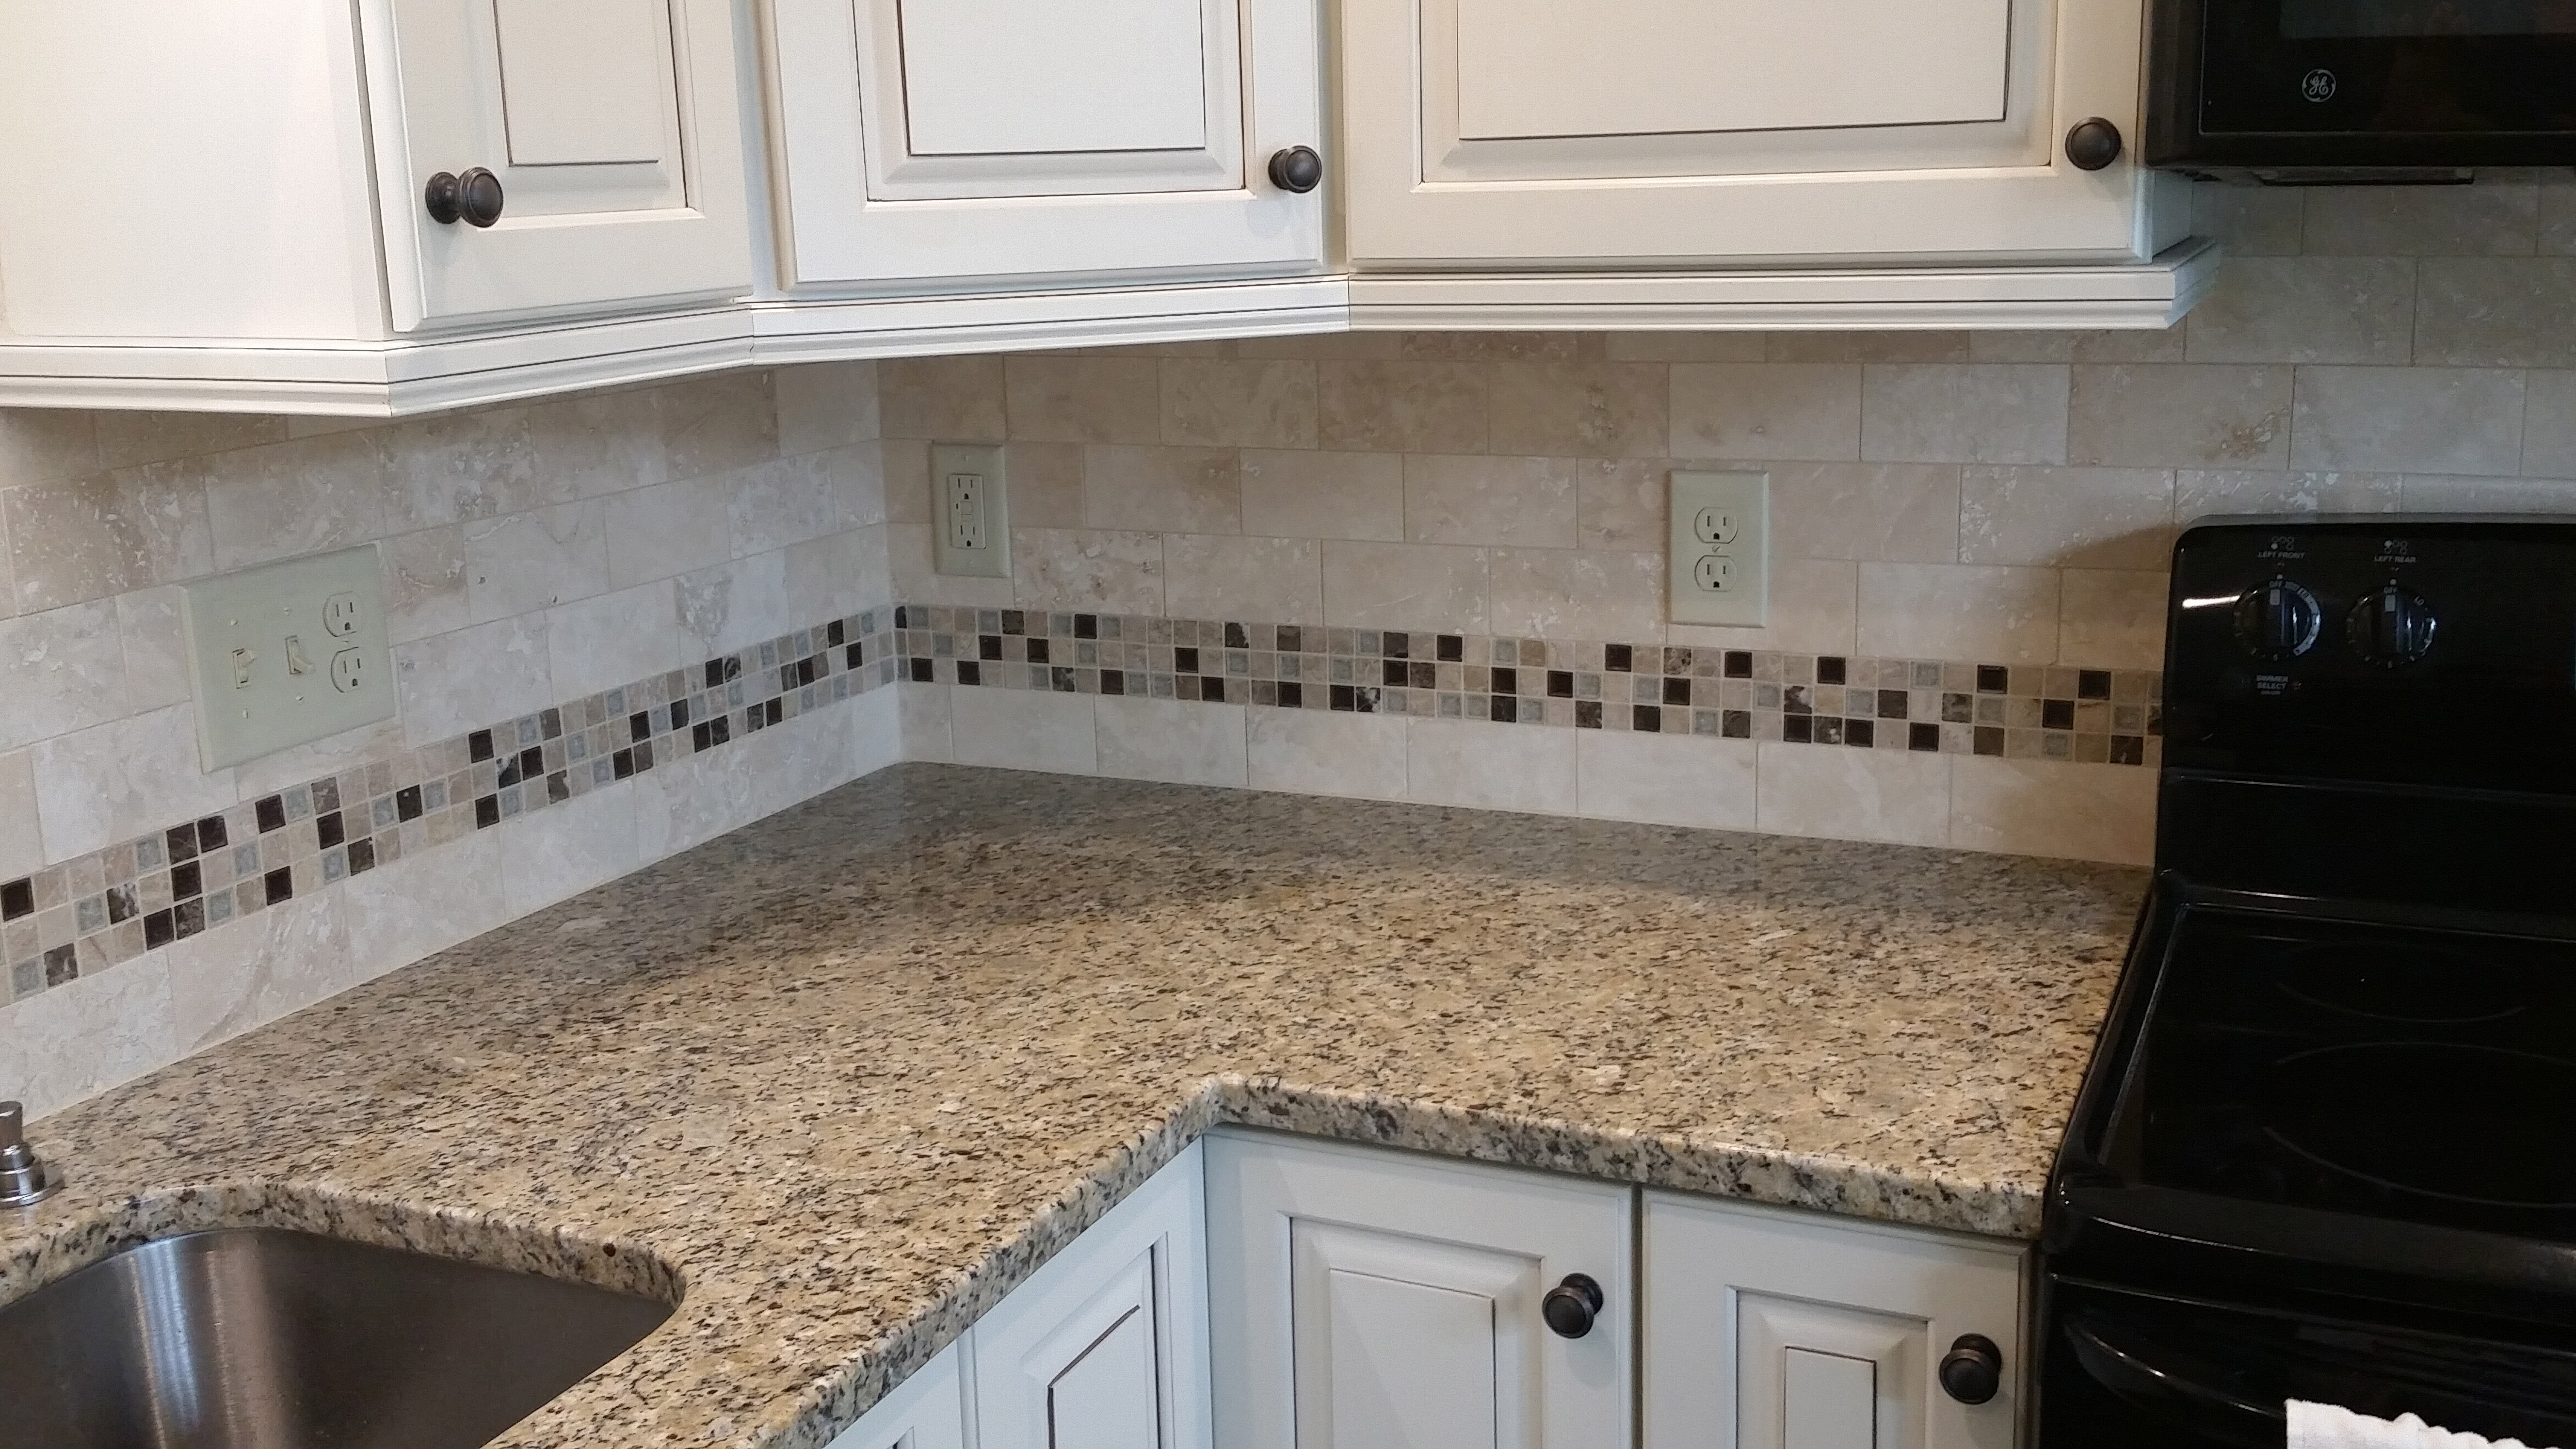 ATS-Light-Honed-Filled-Travertine-3-x-6-Subway-with-insert-mosaic-GLZ-Tranquil-Series-in-Coffee-&-Cream